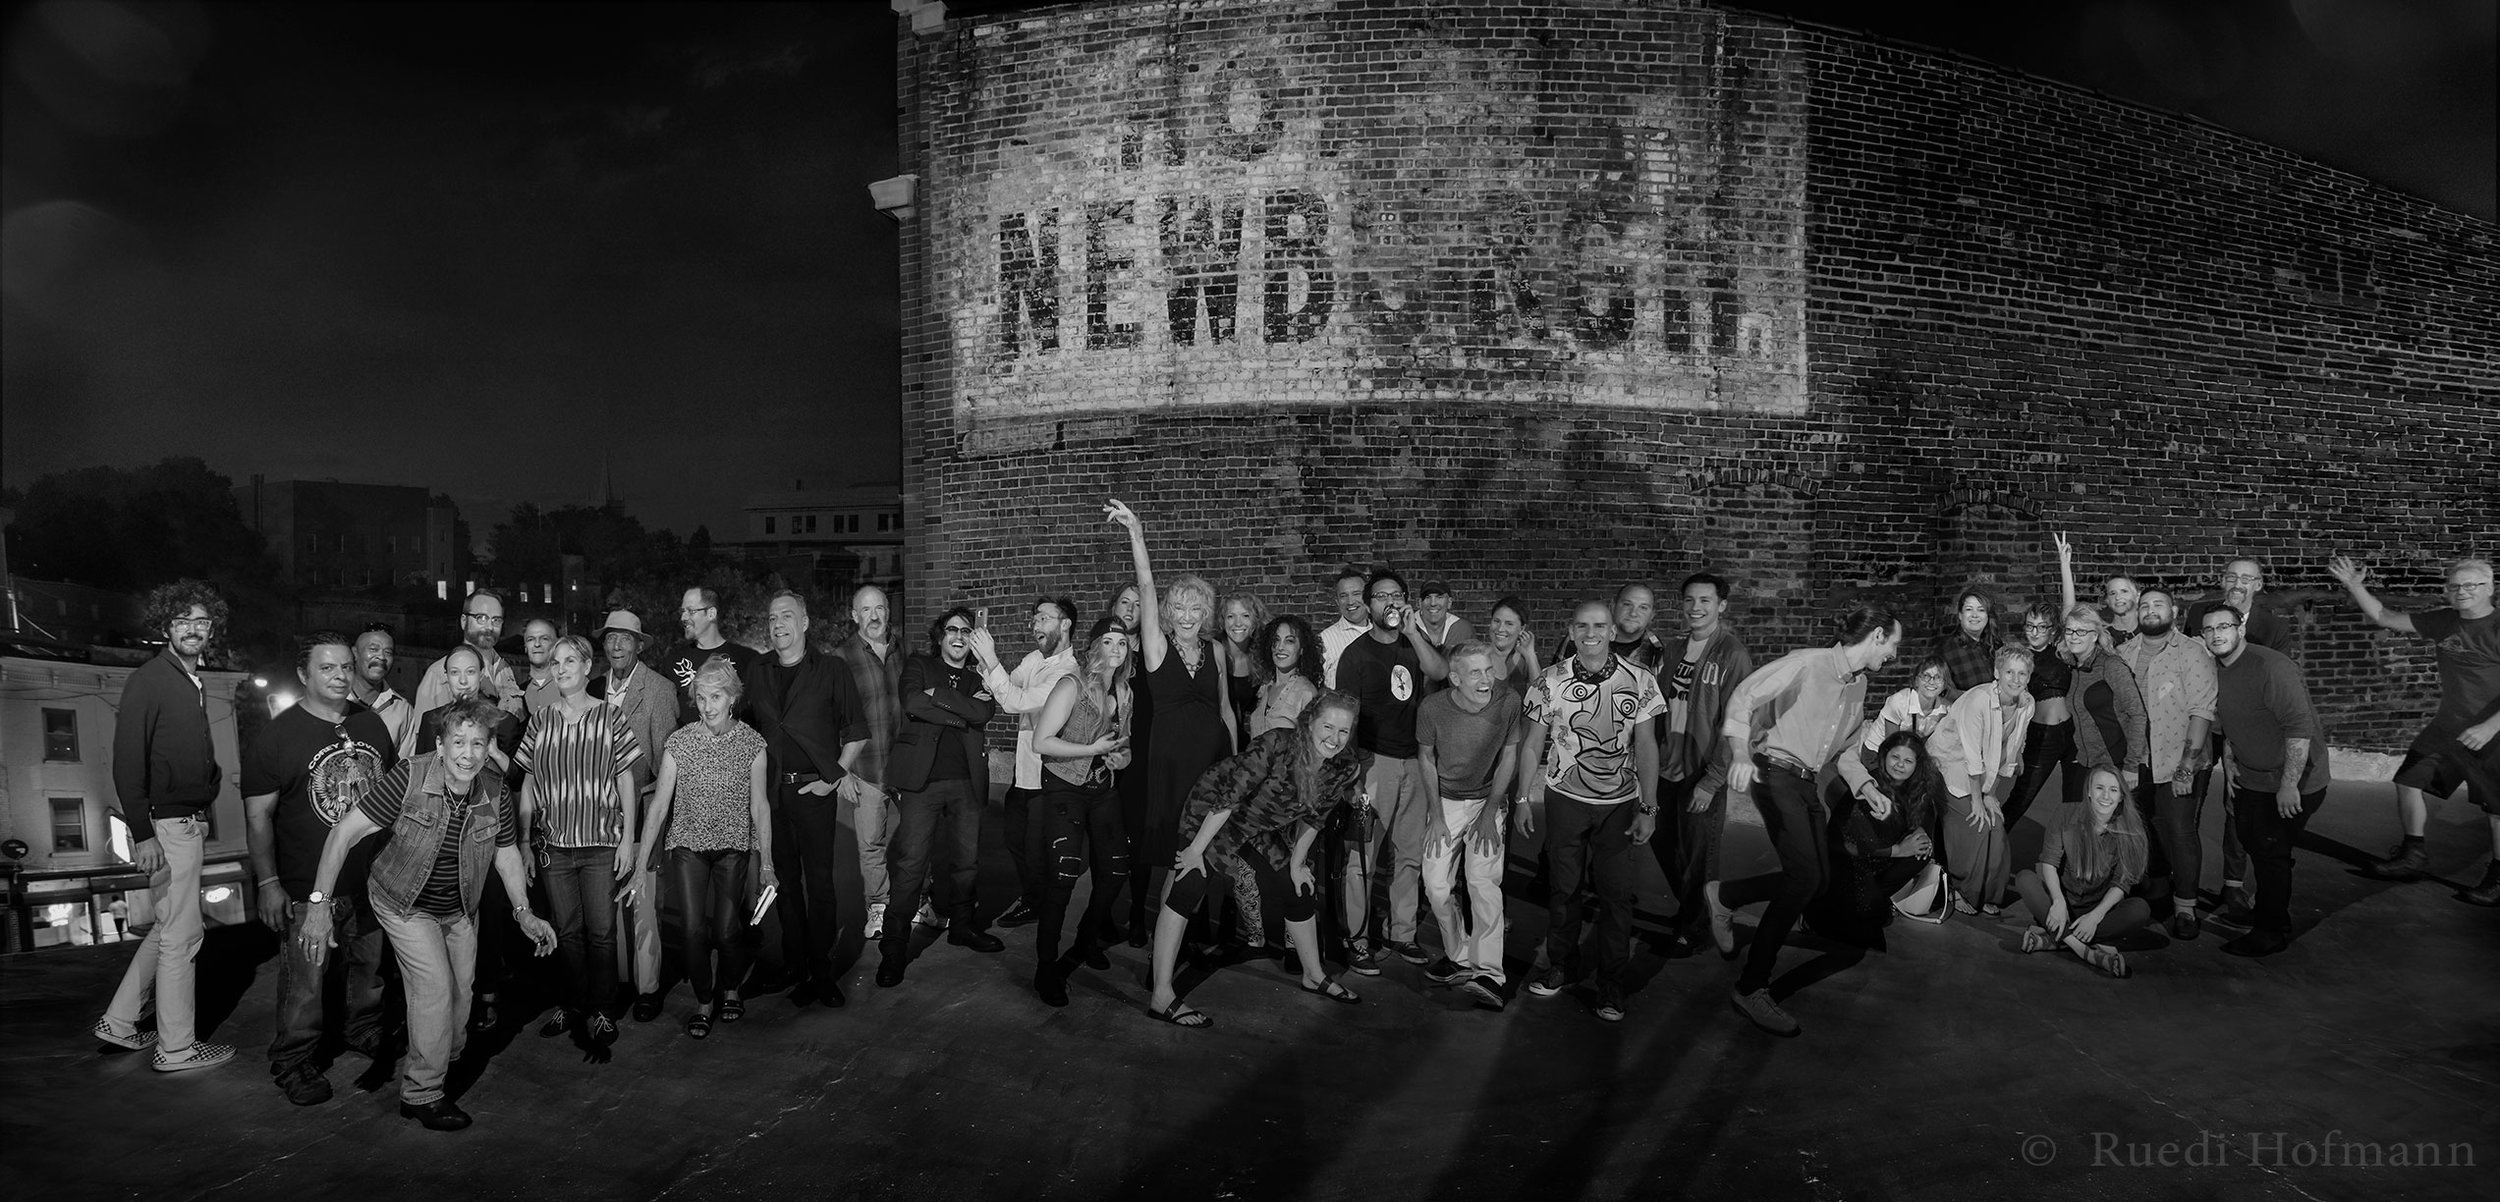 NOS 2016 artists on the roof of Terran Studio, Newburgh, NY